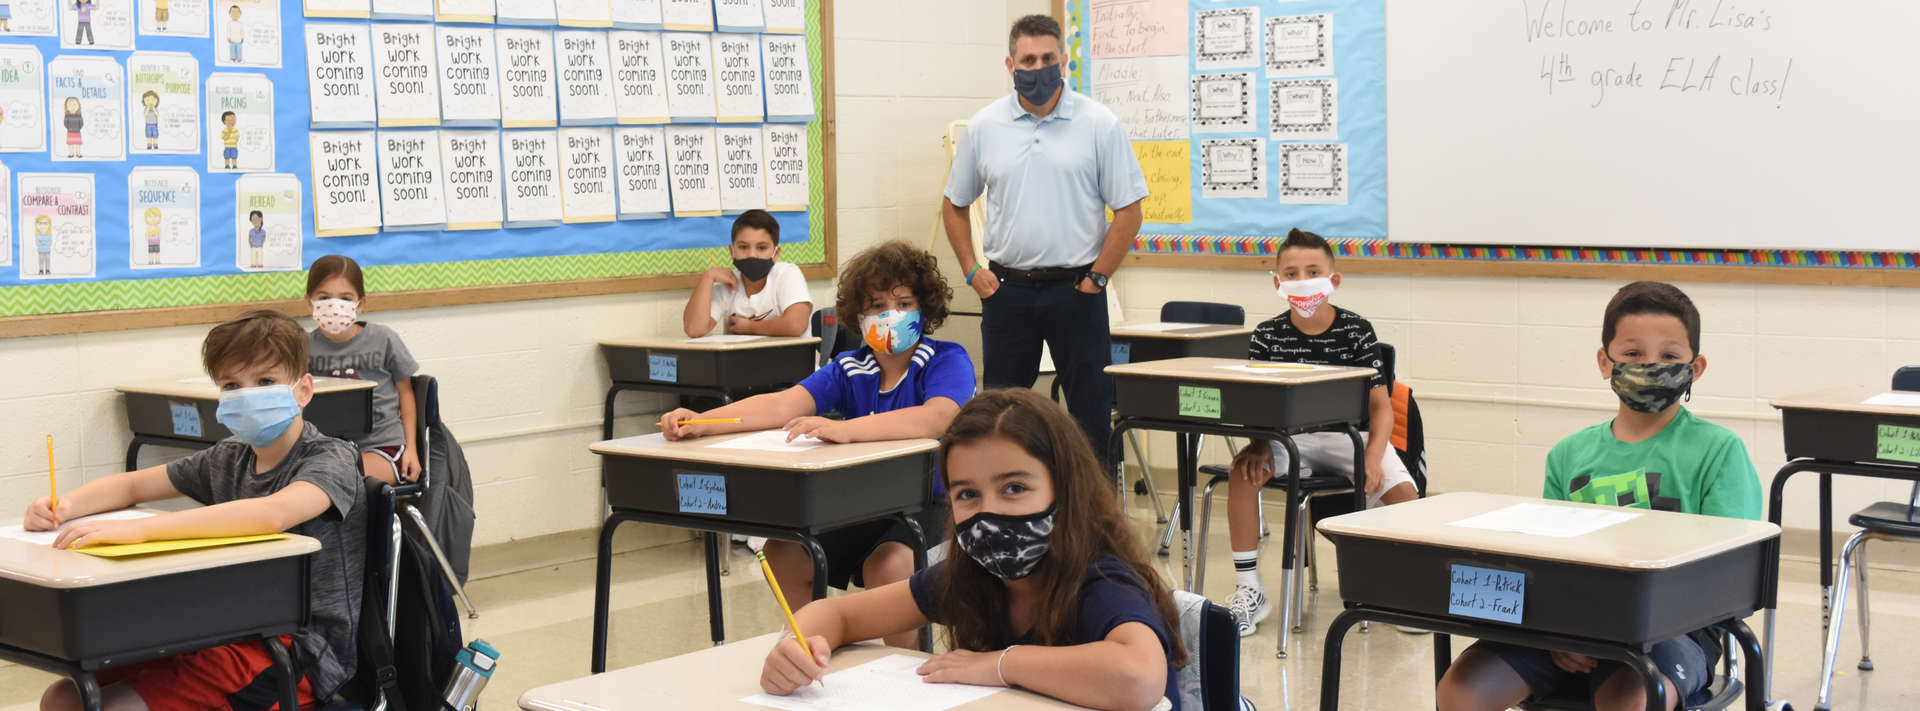 male teacher stands with his fourth grade class